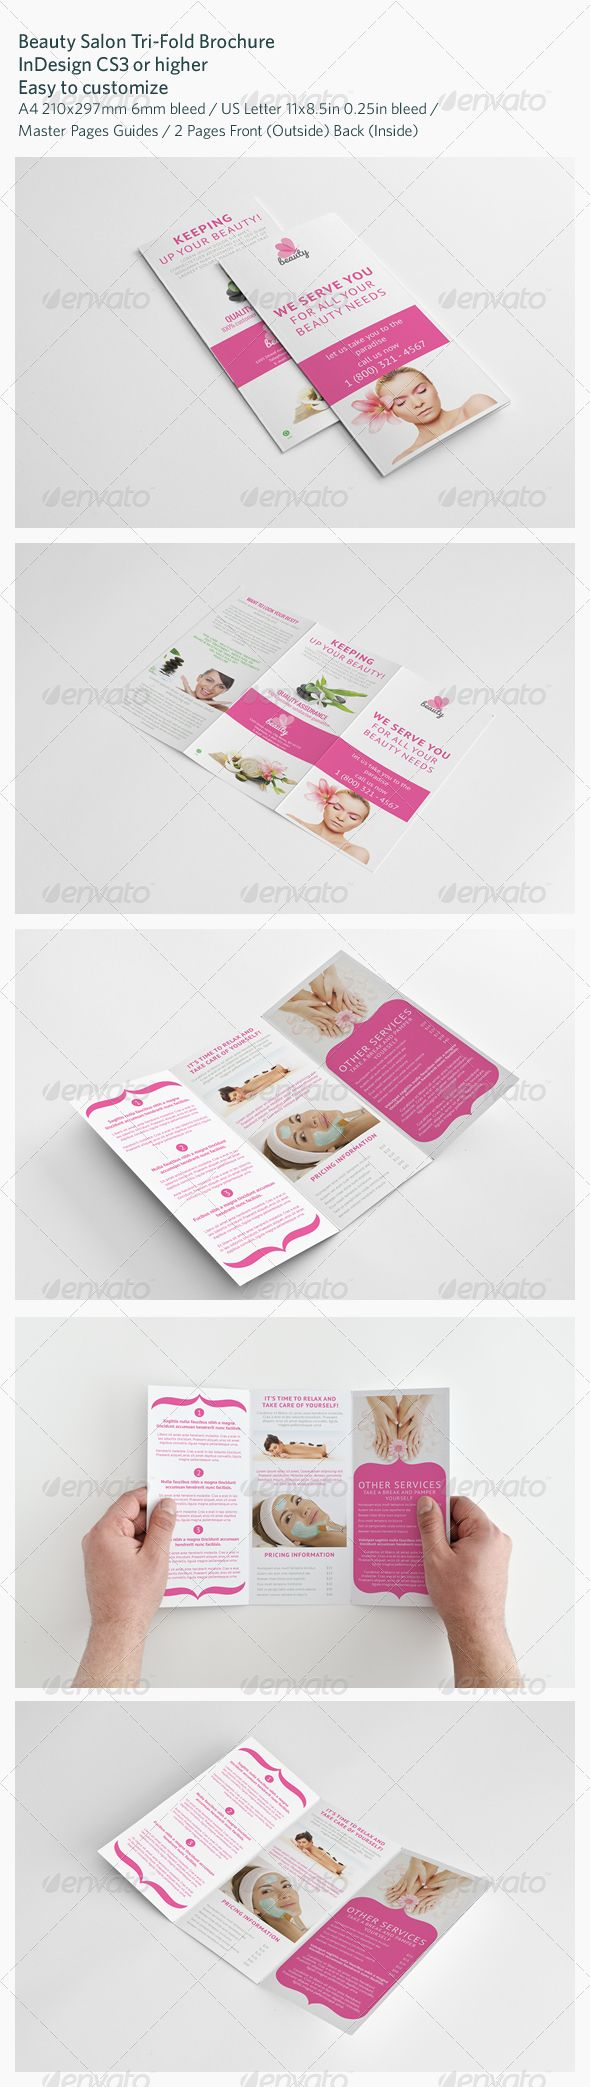 Beauty Salon Tri-Fold Brochure a4, beauty, body, brochure, care, clean, company, customizable, elegant, folding, idea, indd, indesign, information, letter, logo, modern, nail, pedicure, presentation, print ready, professional, relax, retail, salon, service, simple, spa, template, threefold, Beauty Salon Tri-Fold Brochure